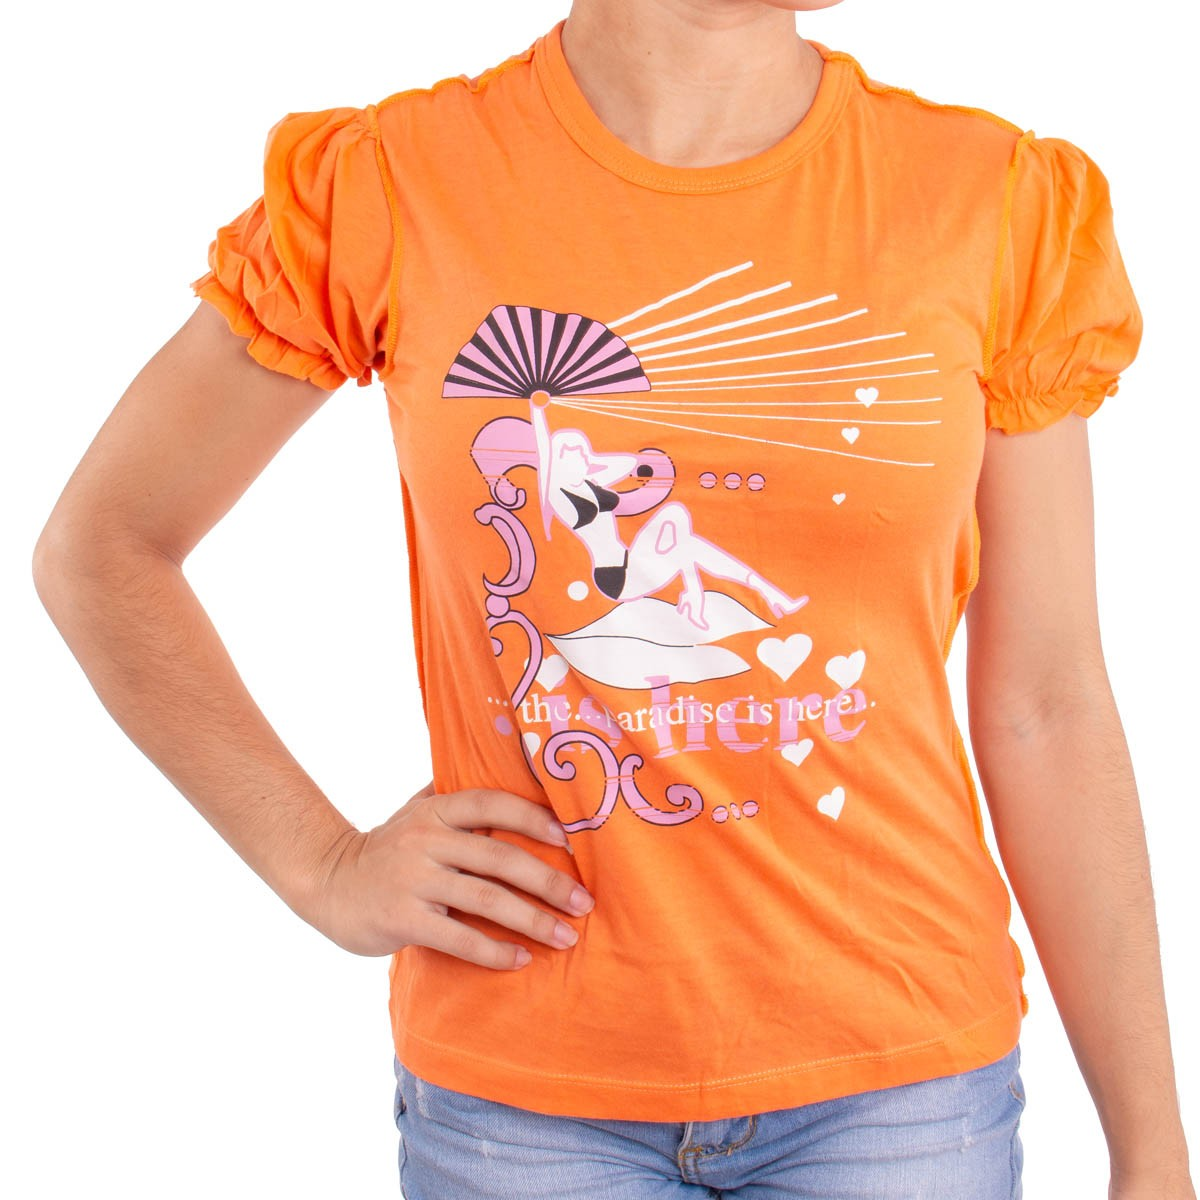 Camiseta Feminina Neo Paradise Is Here  -